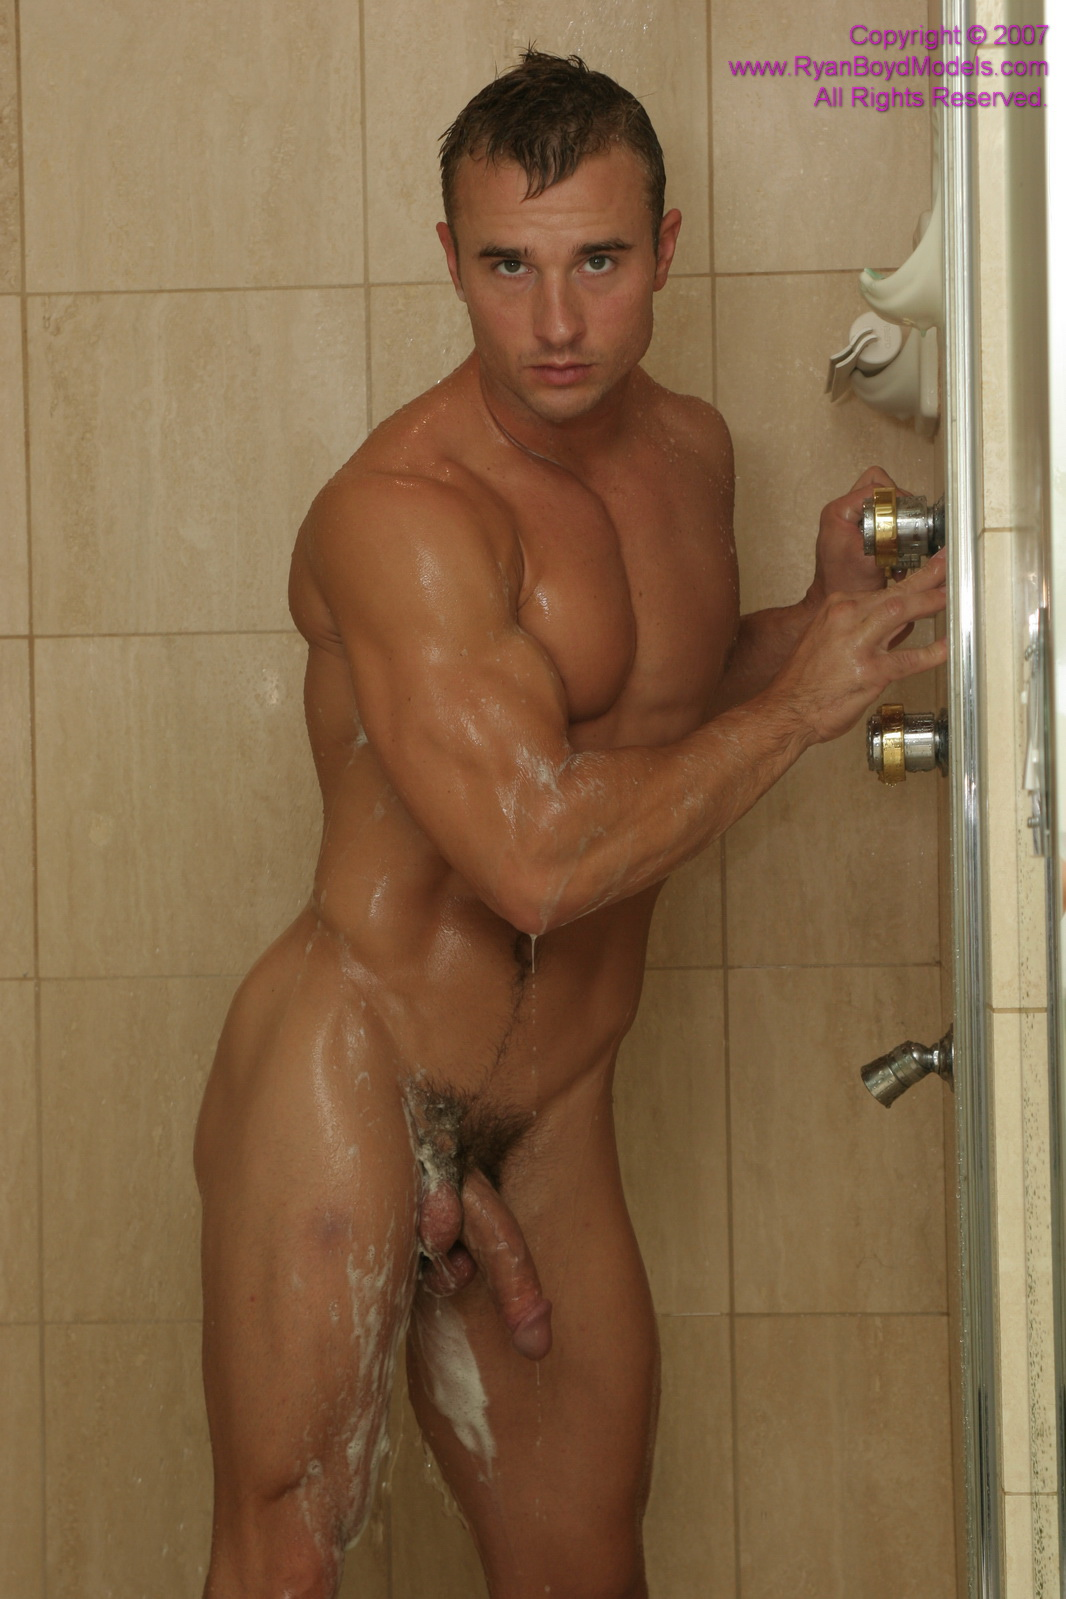 Naked flaccid men in shower